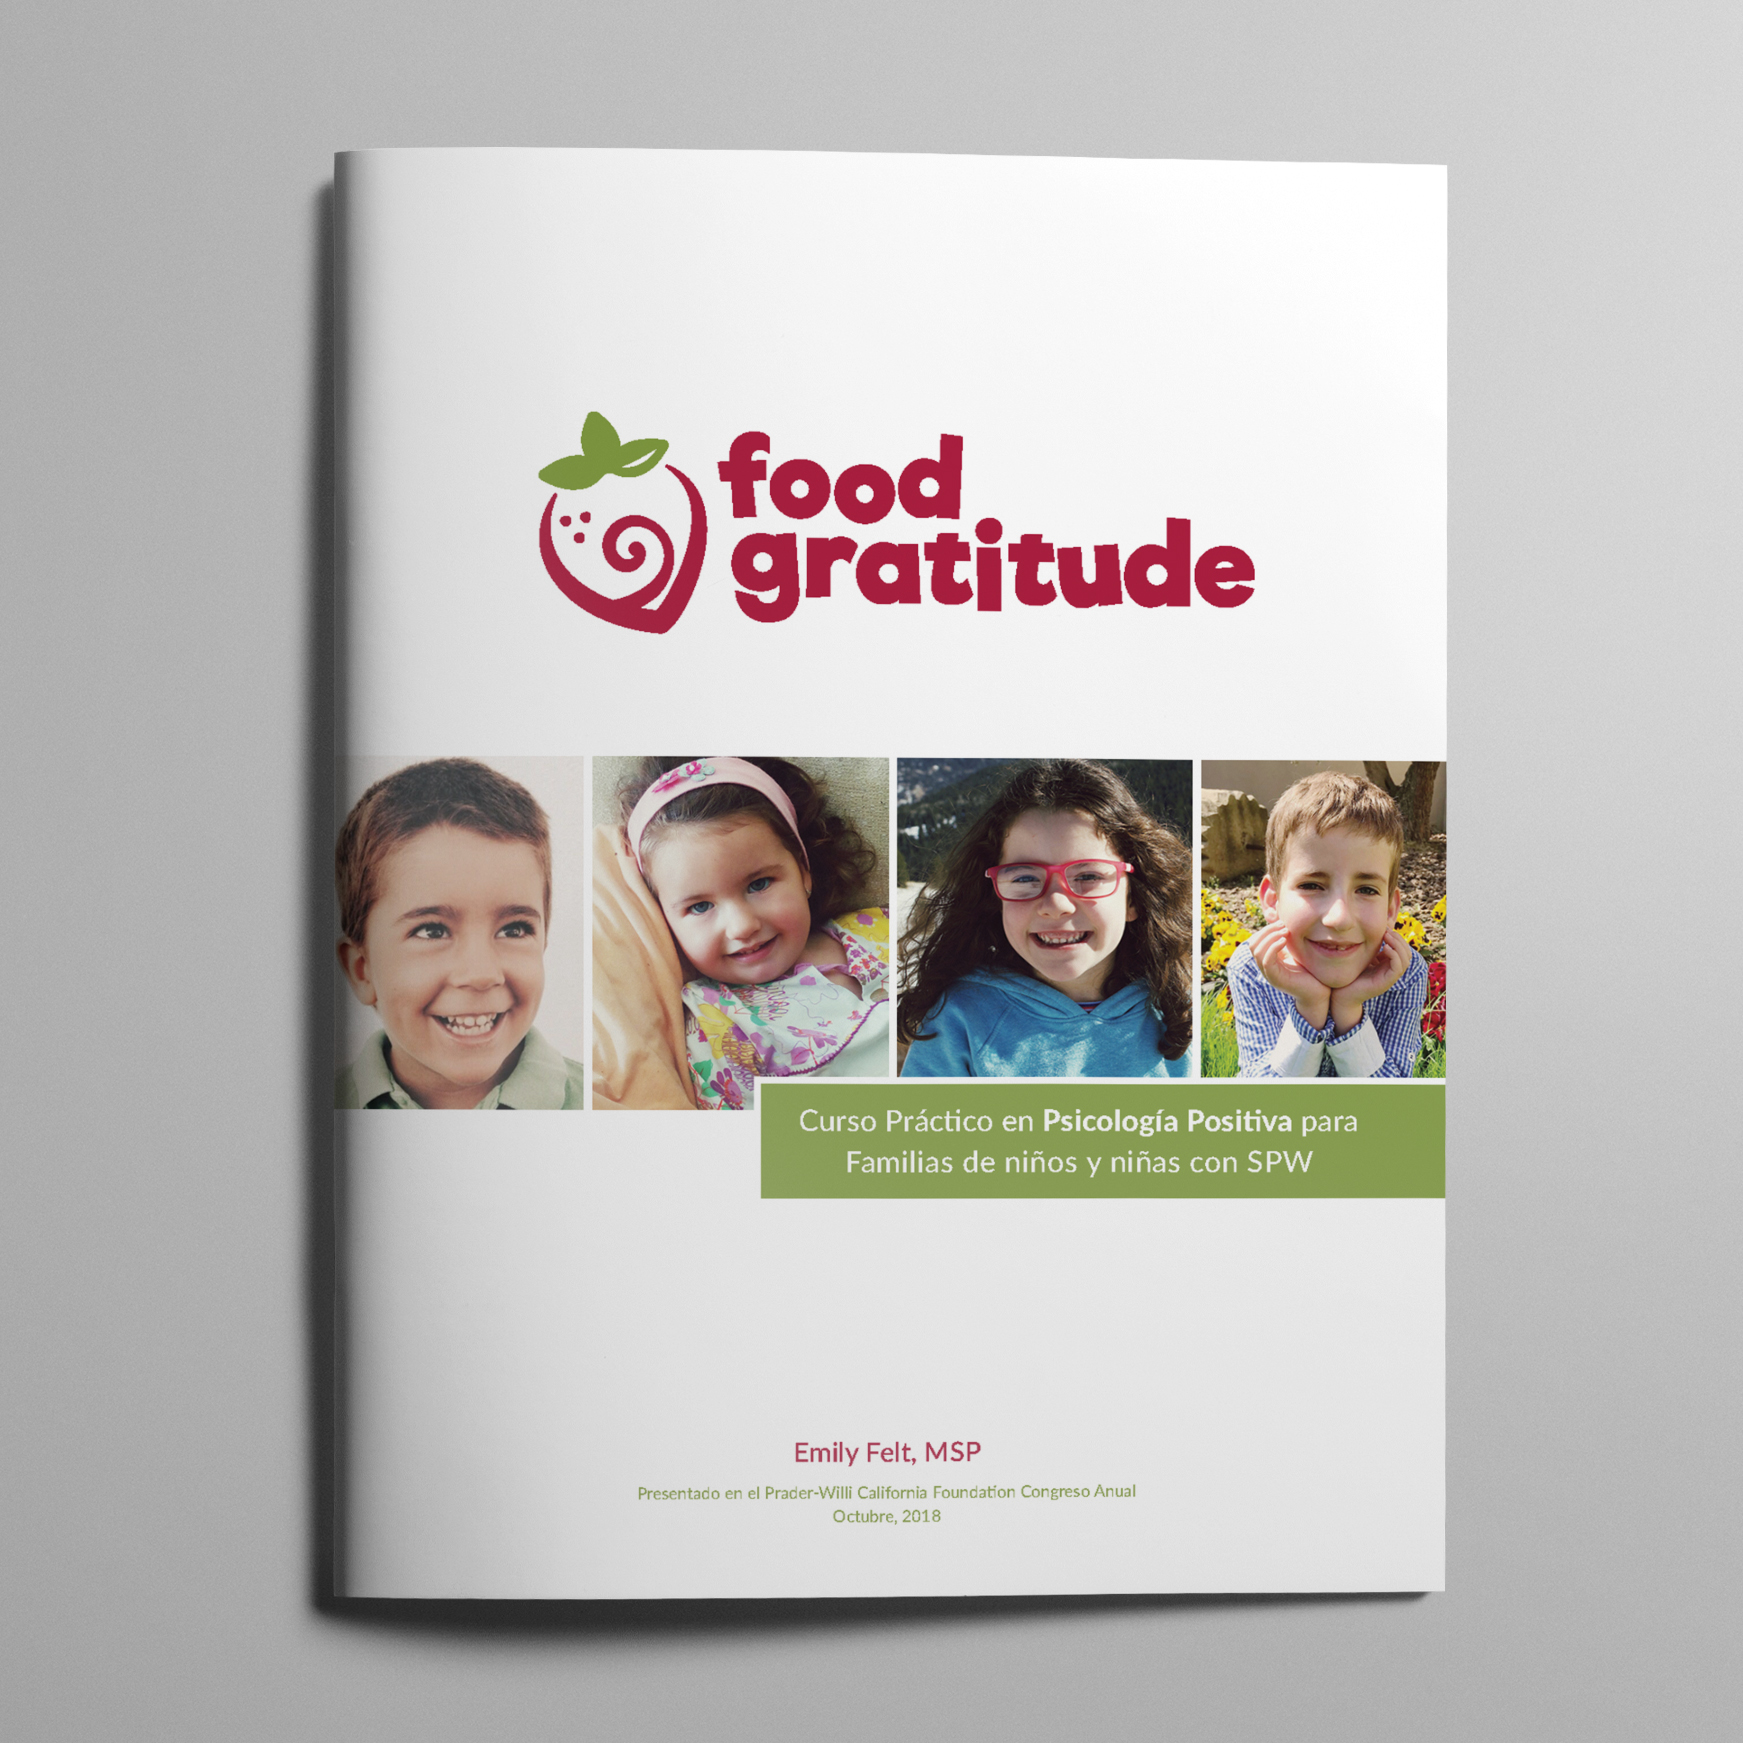 foodgratitude_mock_cover.jpg